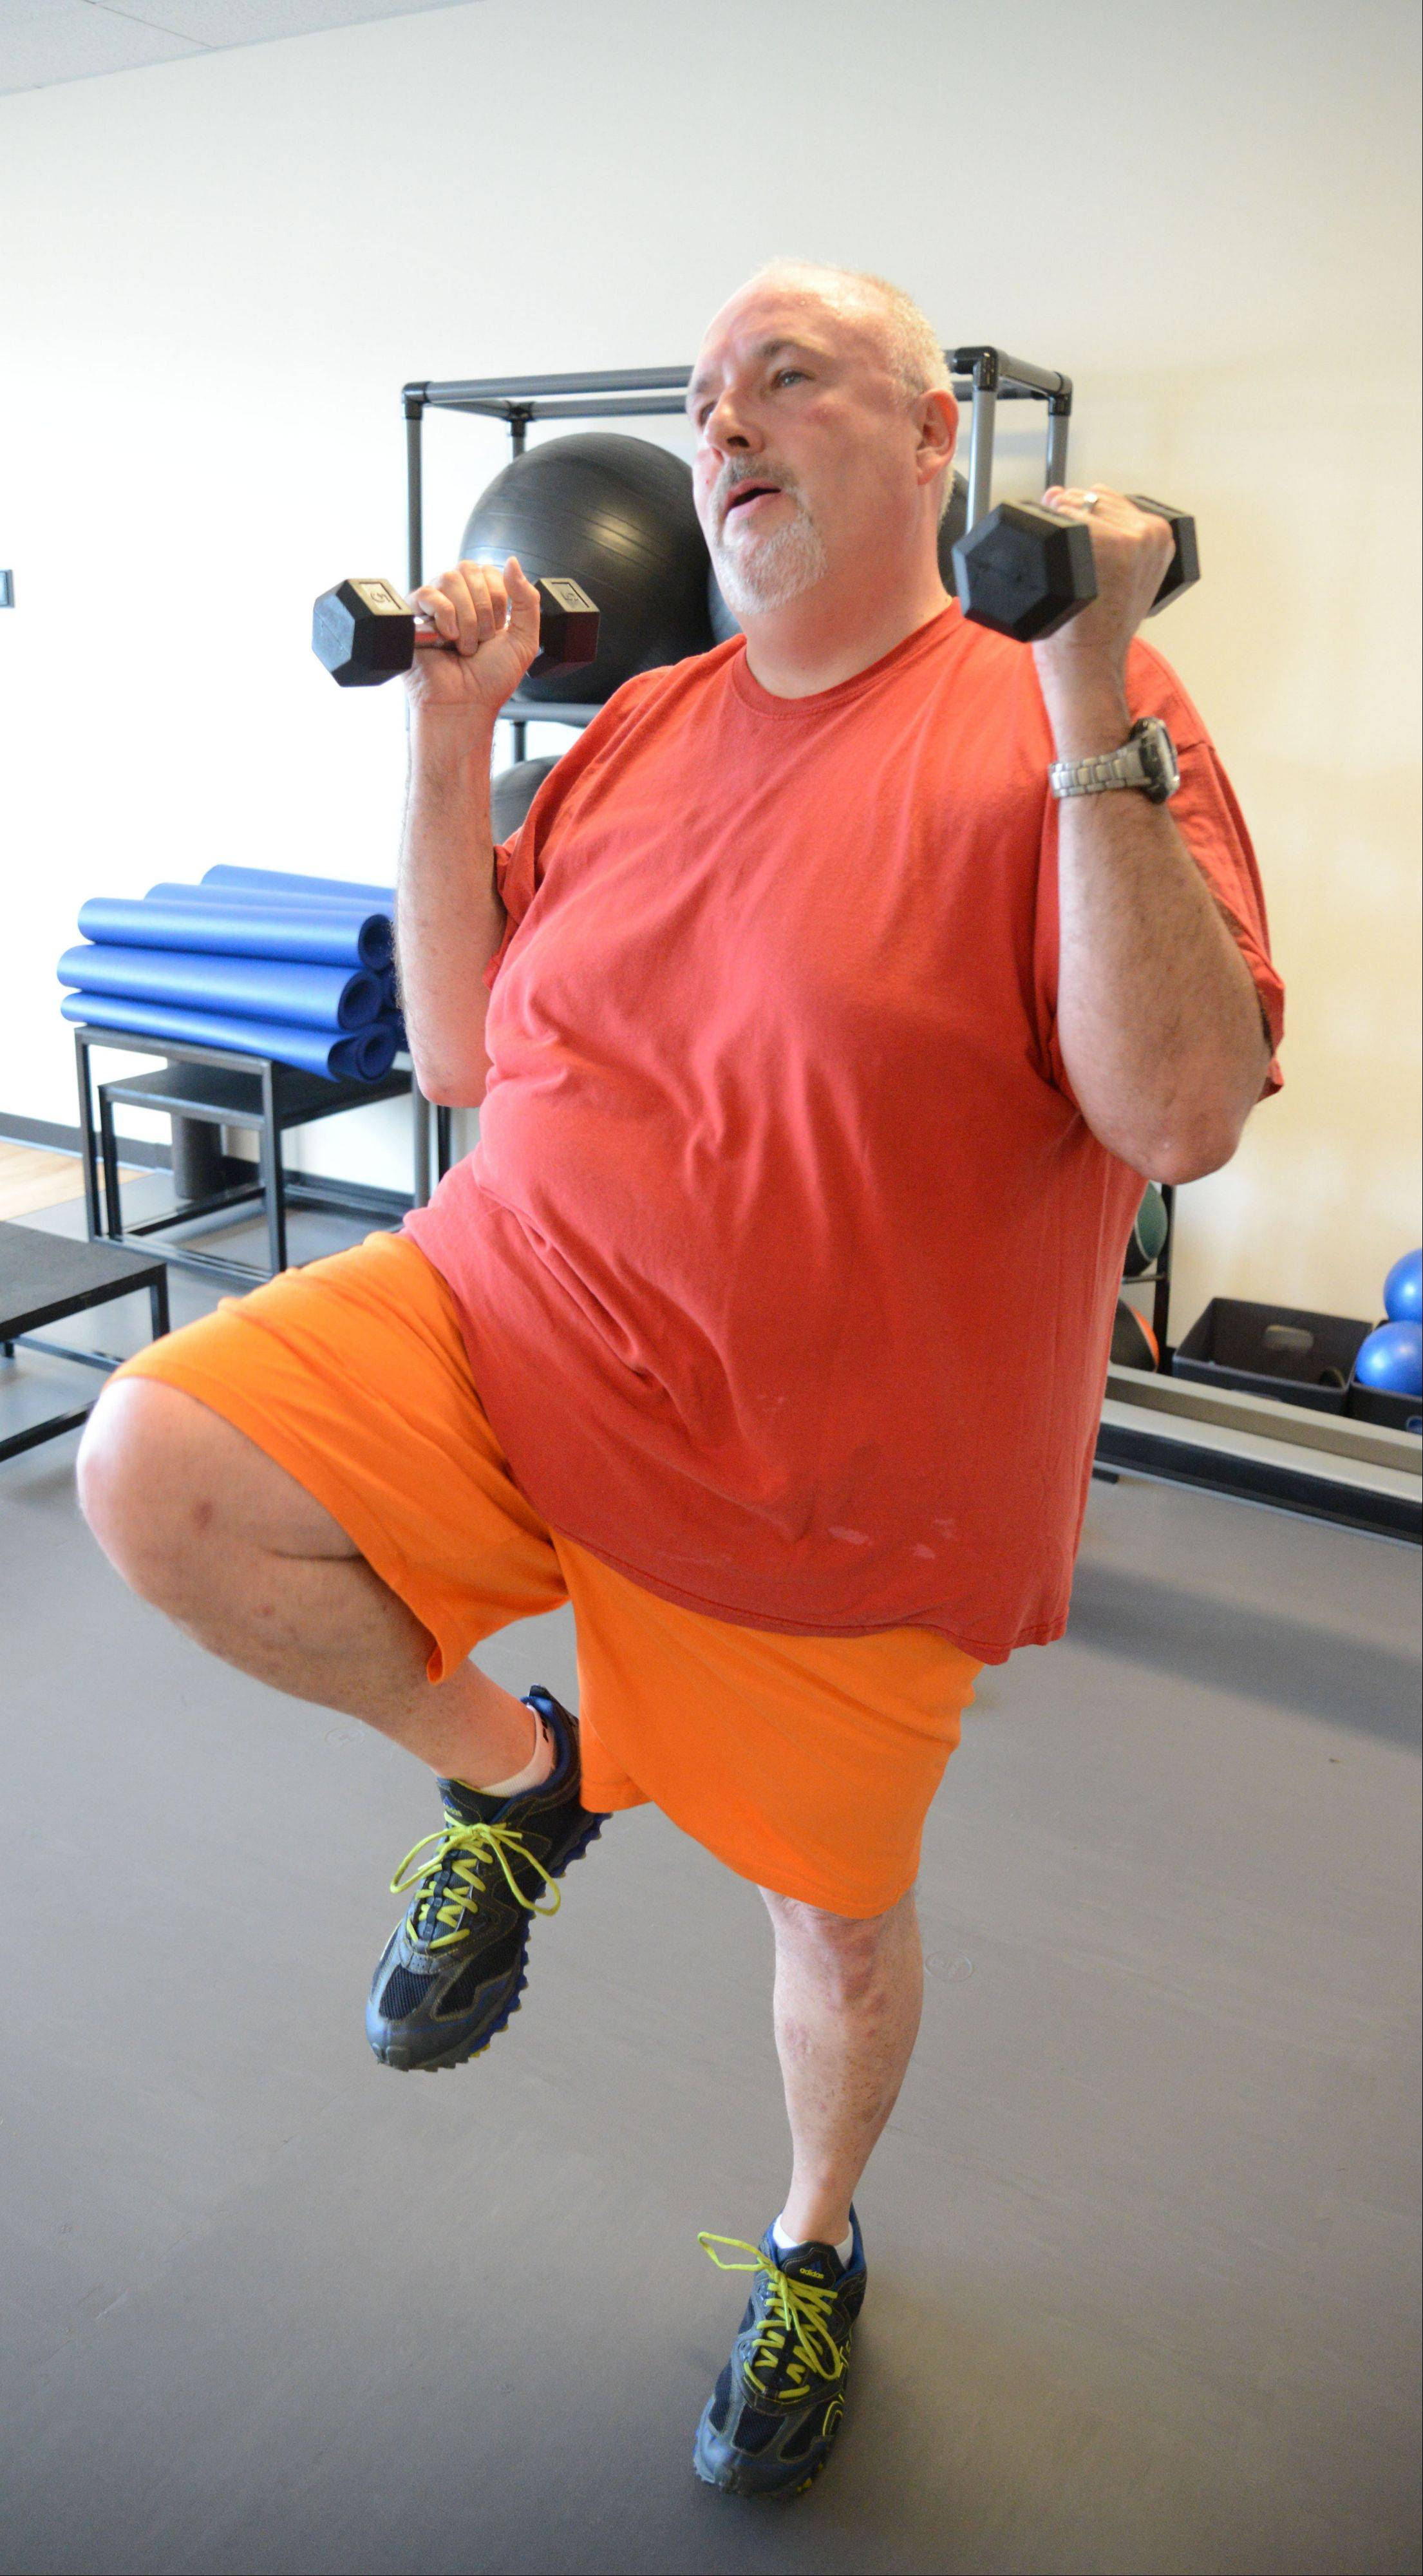 Thomas Callahan participates in a workout class at Downsize Fitness in Naperville. He is one of three male clients so far at the chain's first suburban location, which opened July 1.